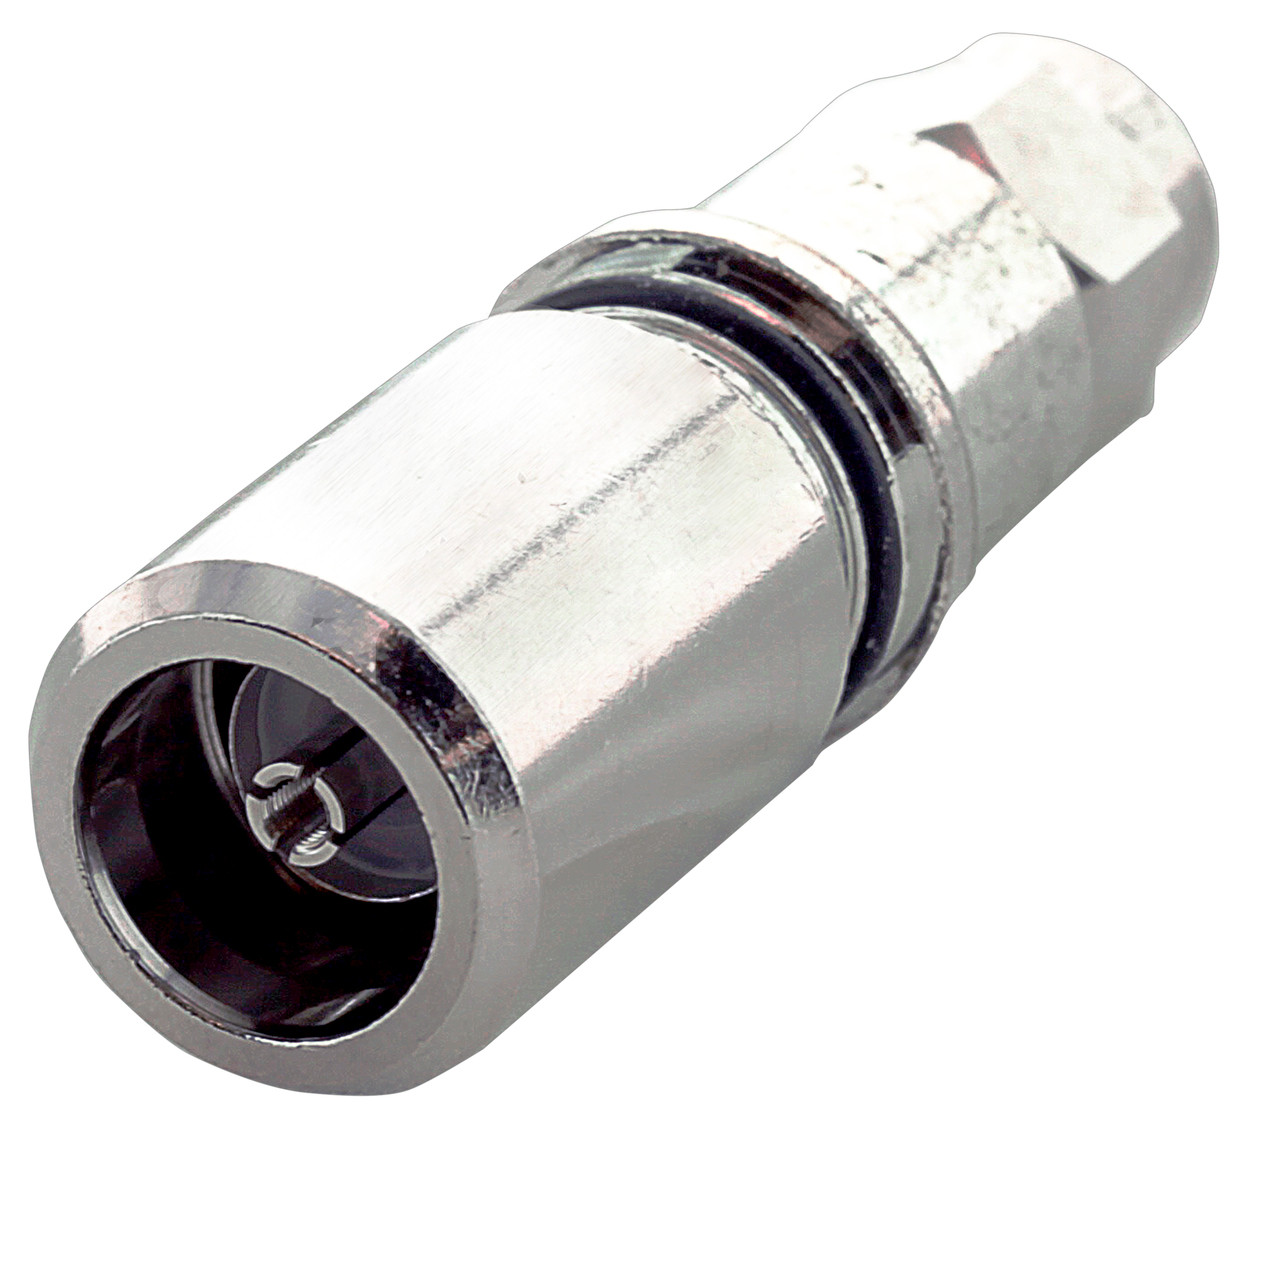 Wilson 971150 F-Male Connector for RG11 Cable - RG11 side